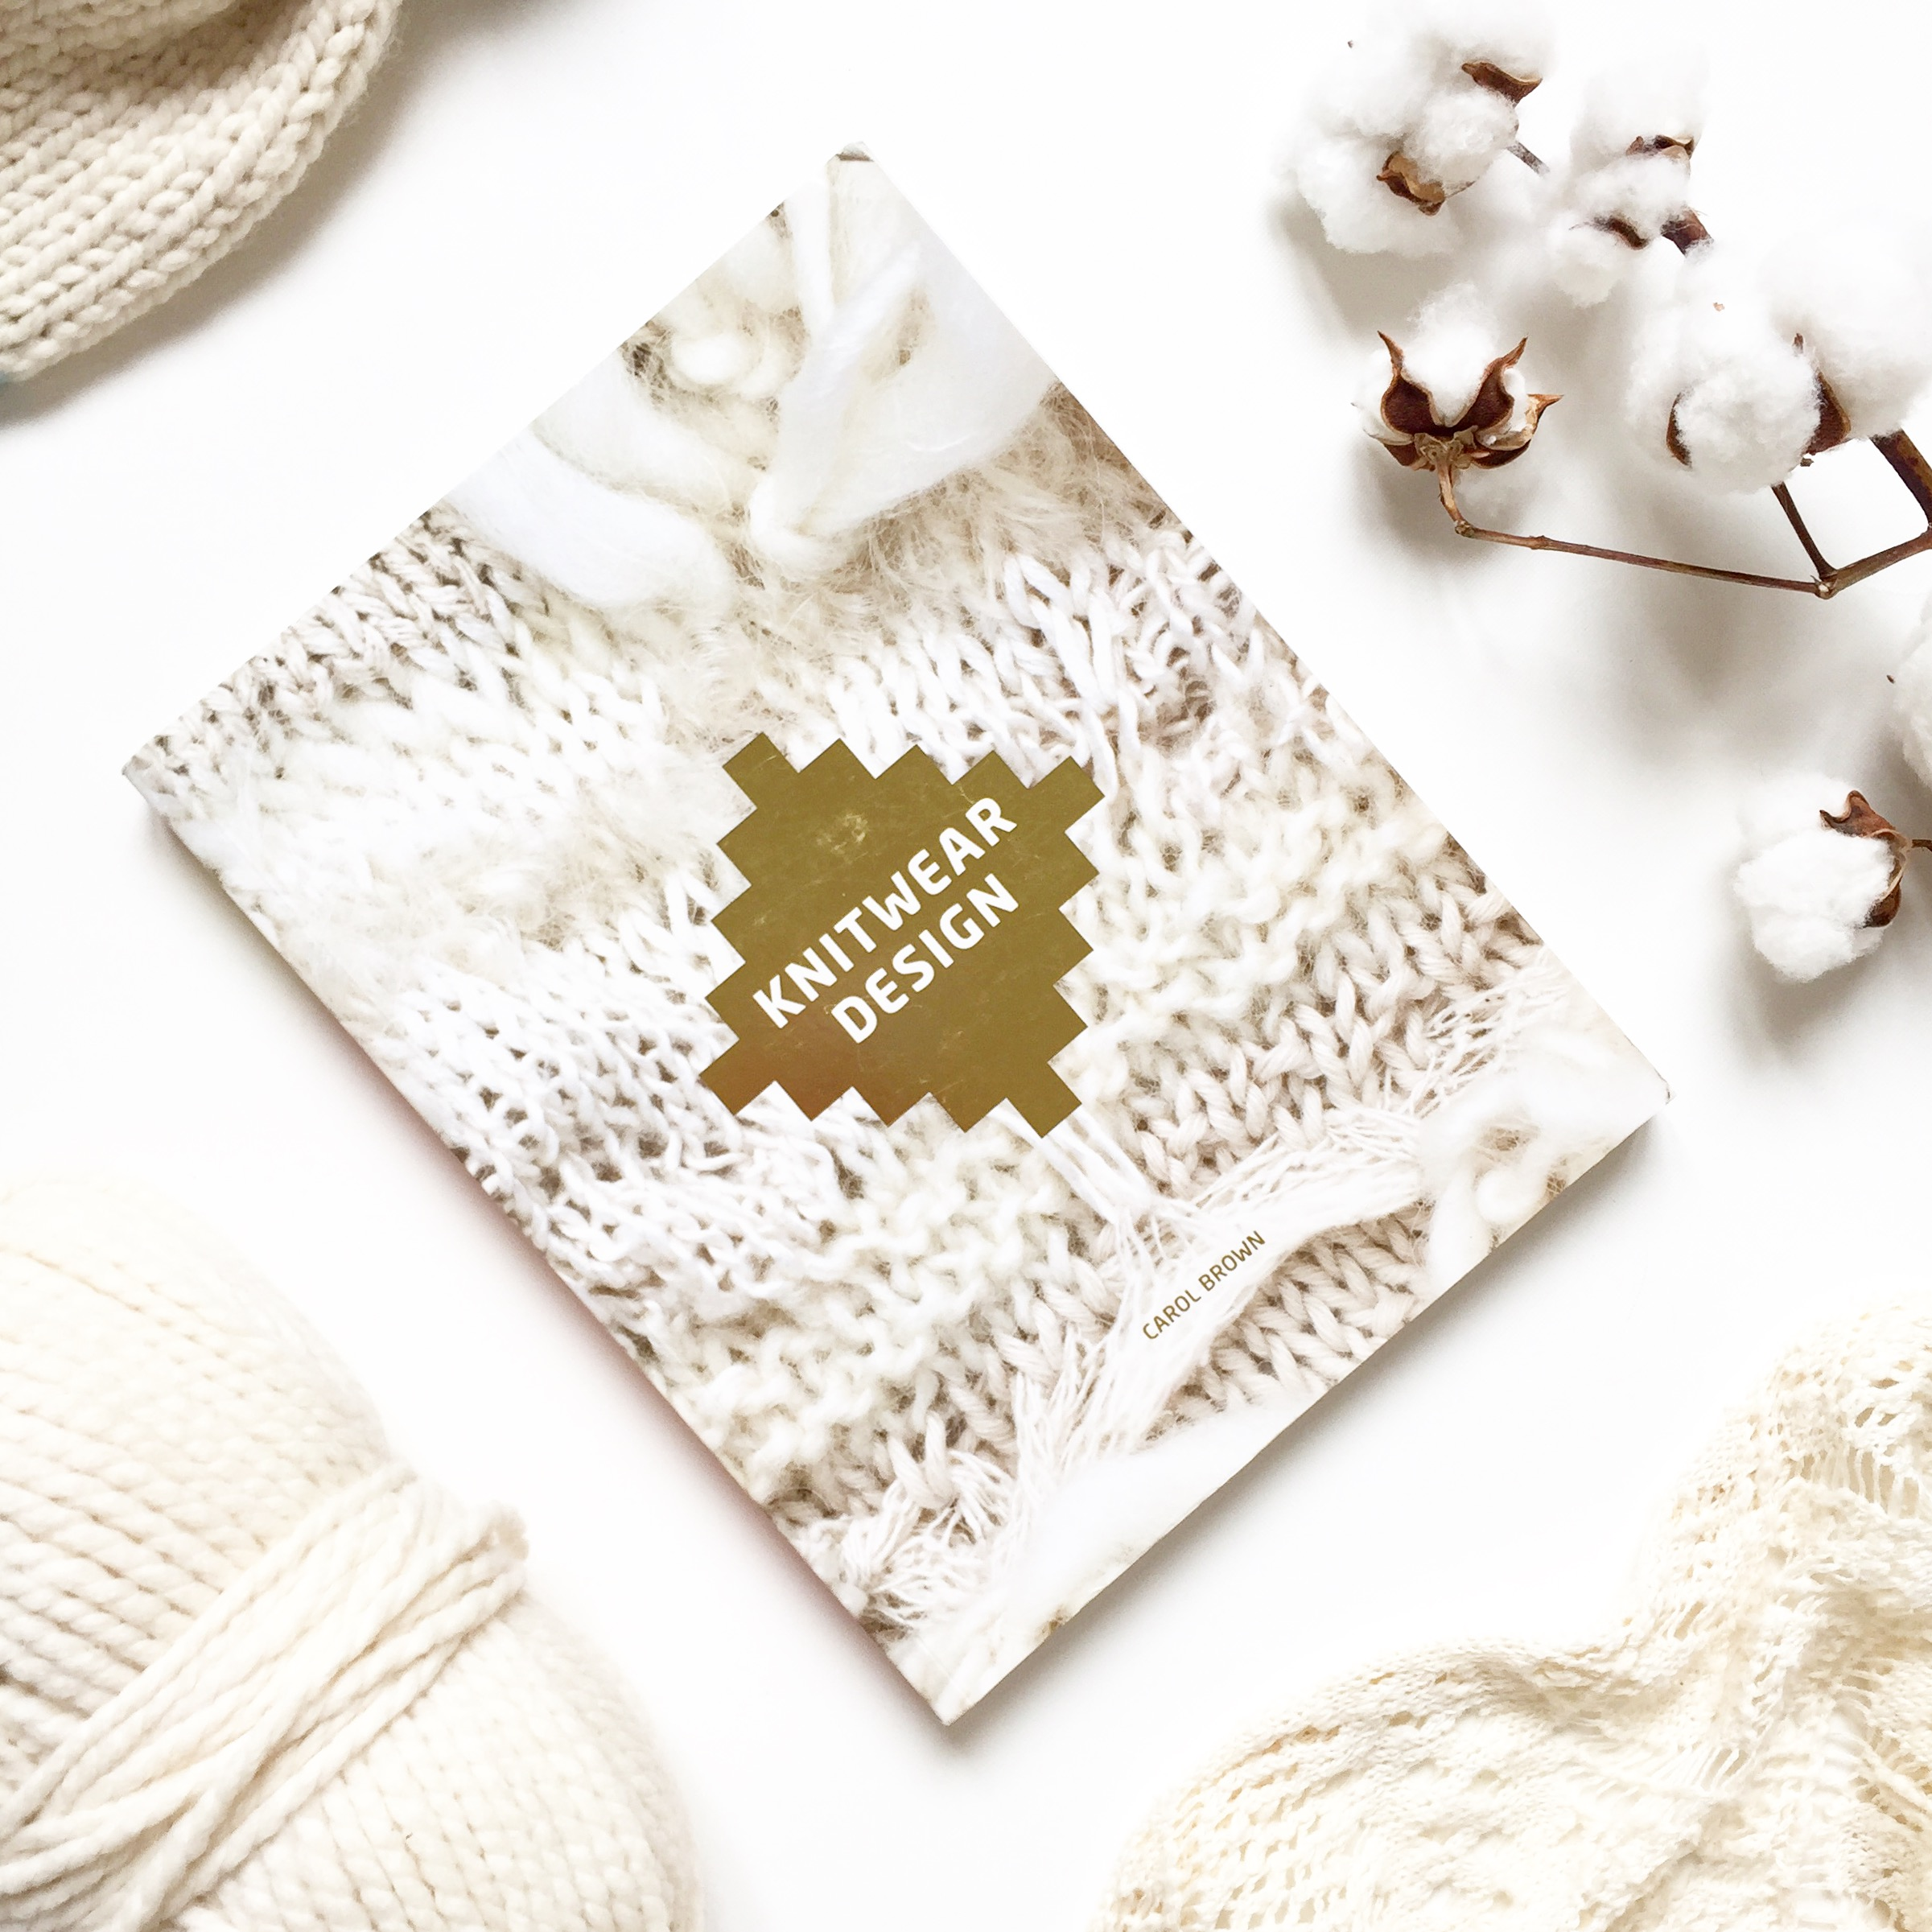 Knitwear design Carol Brown book review